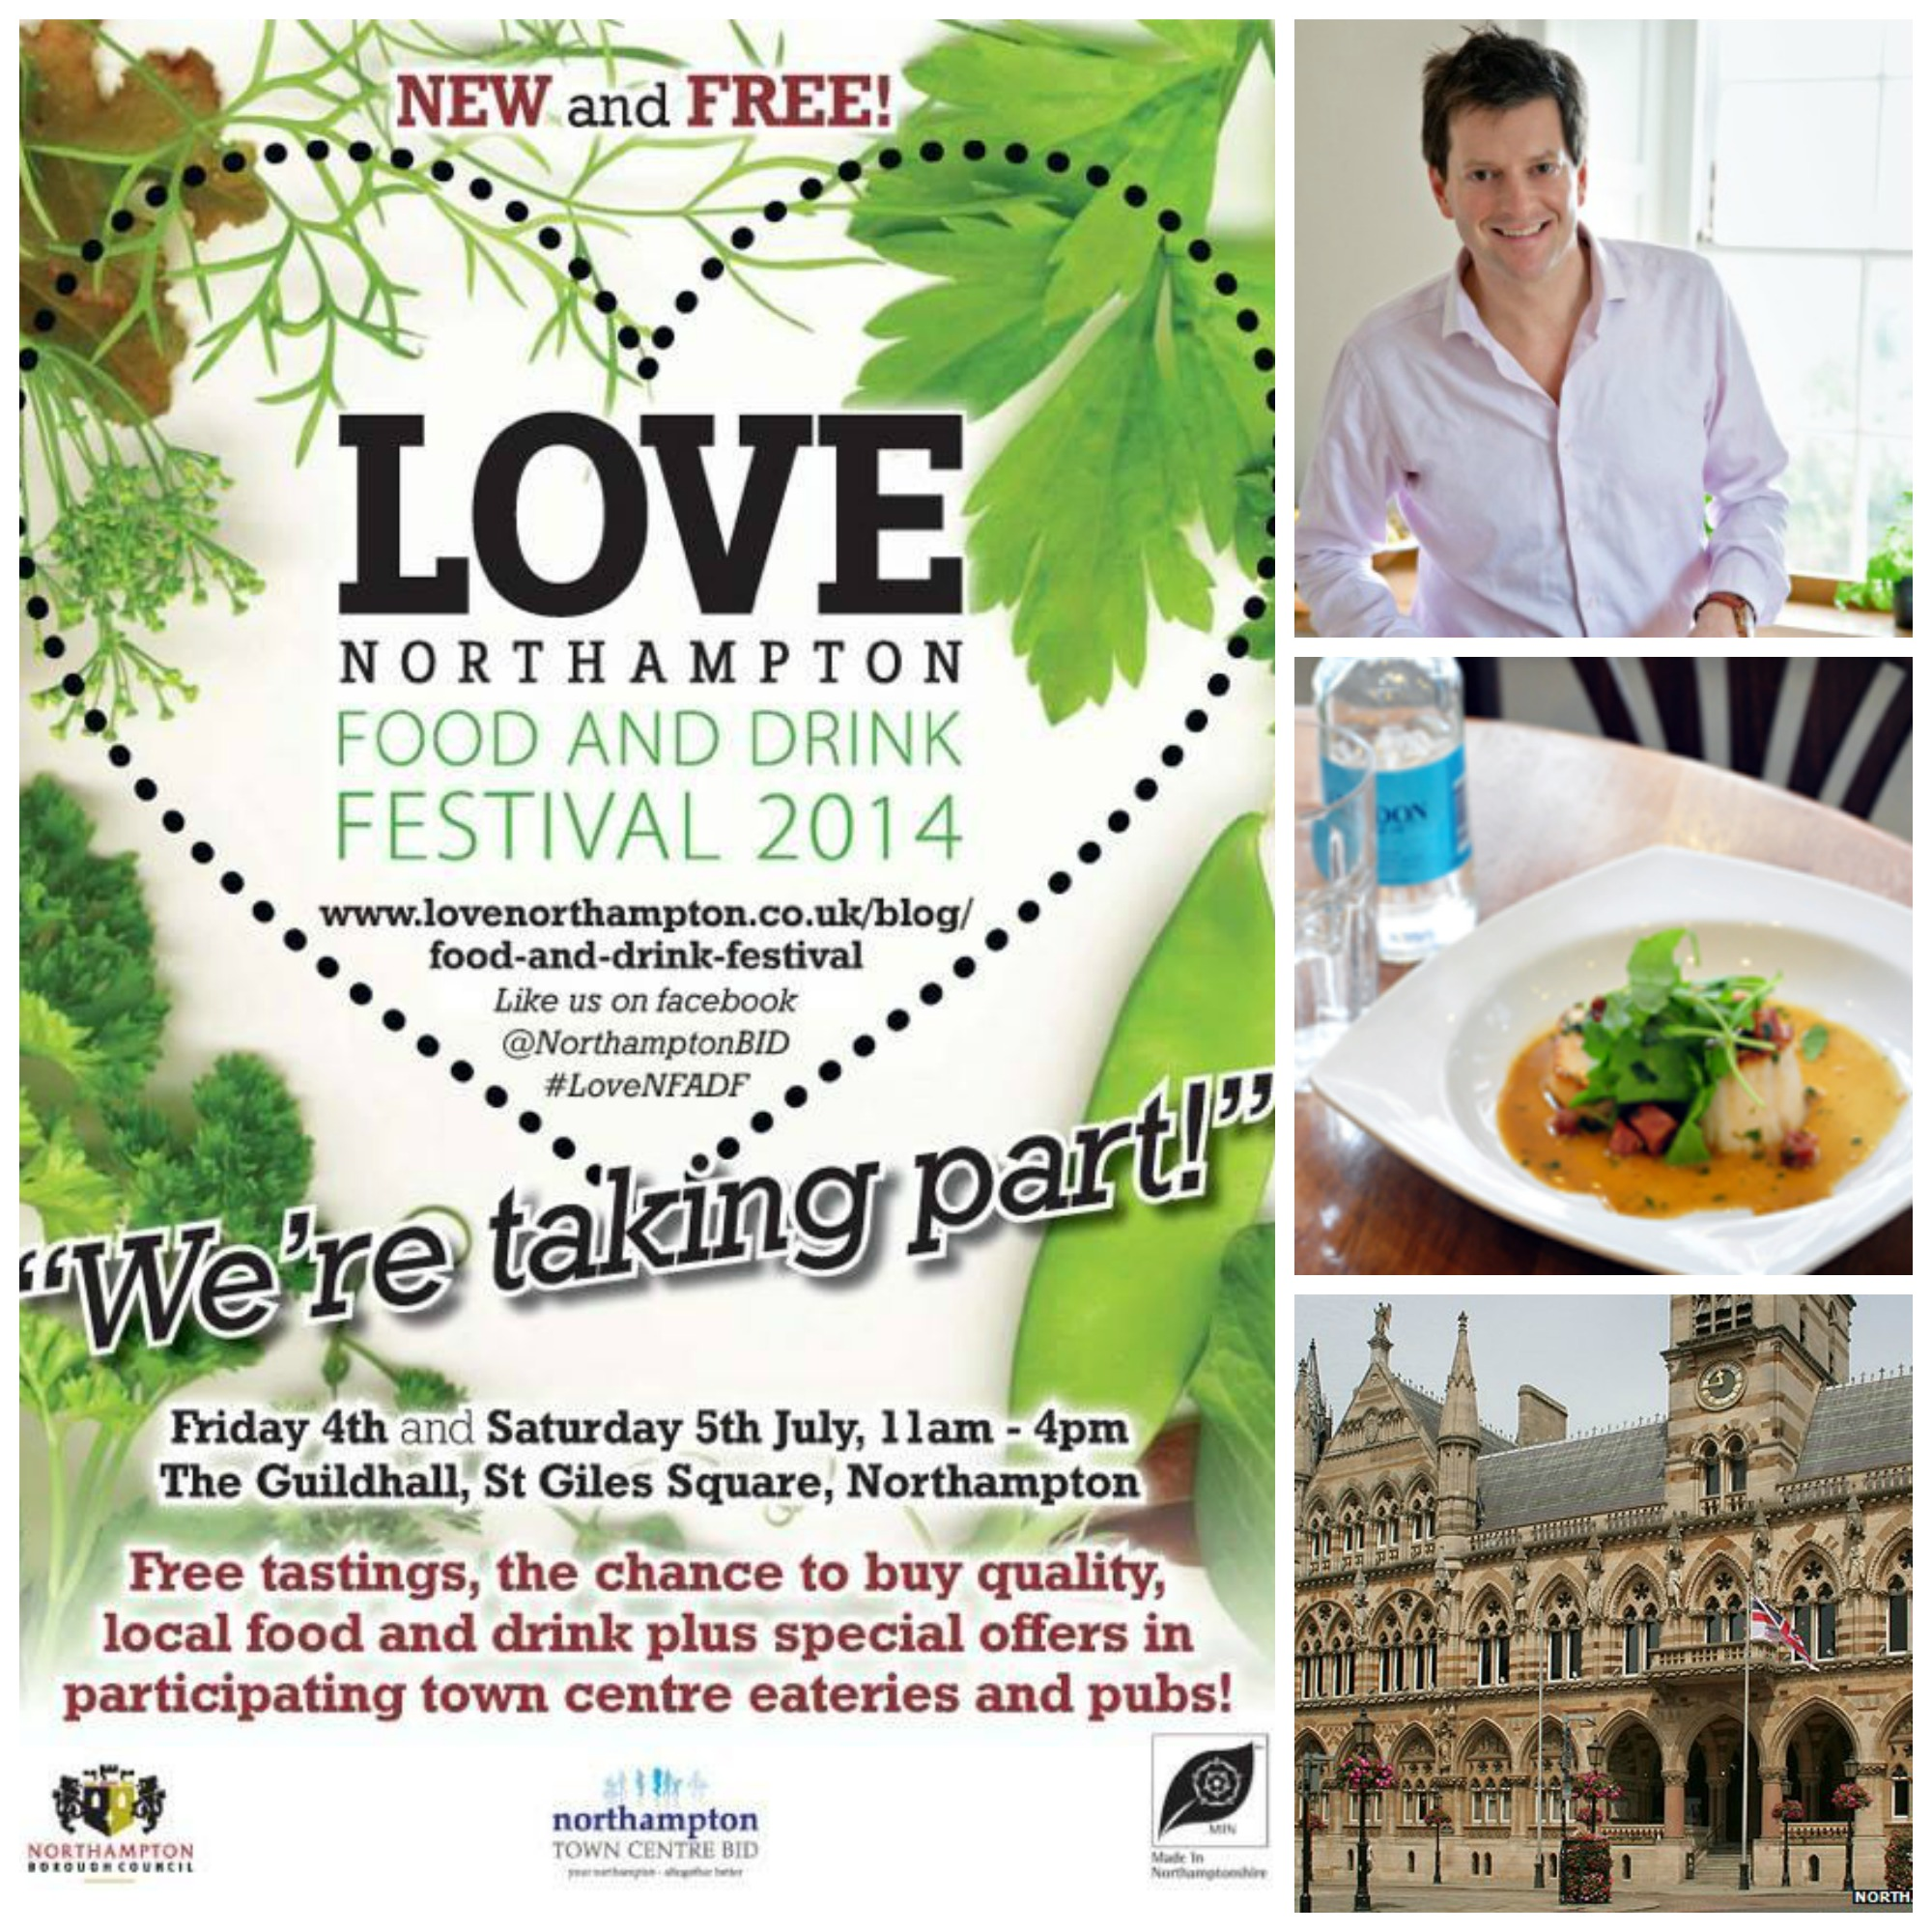 Love Northampton Food and Drink Festival | Midlands Gourmet Girl